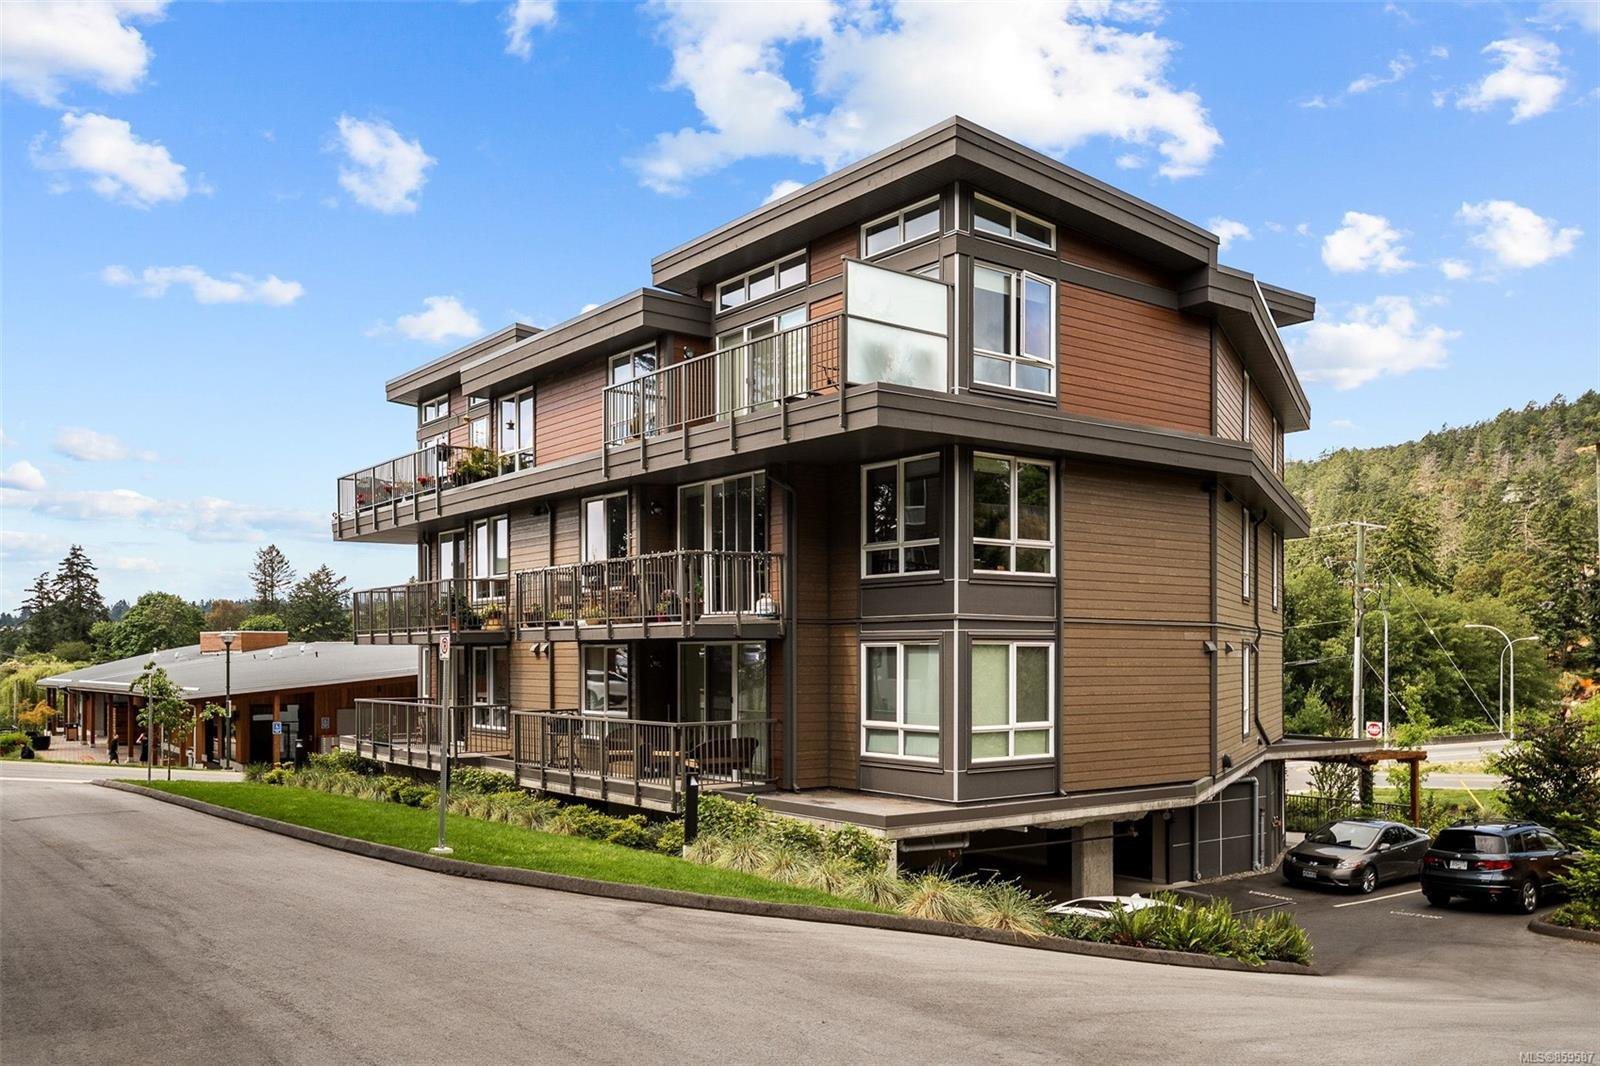 Main Photo: 301 100 Presley Pl in : VR Six Mile Condo for sale (View Royal)  : MLS®# 859587